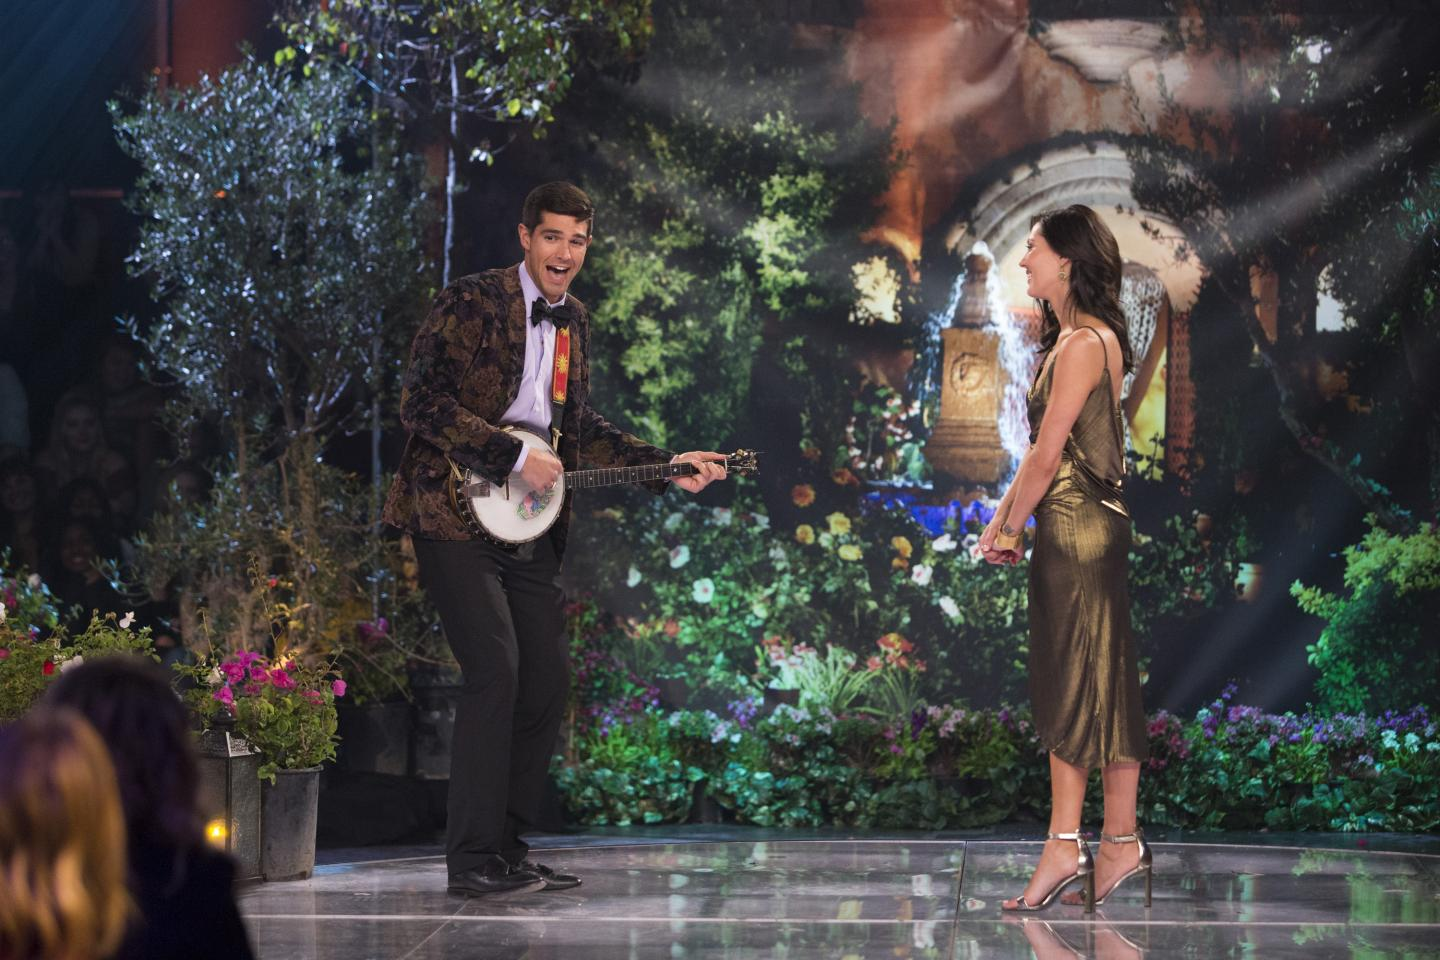 Ryan Peterson and Becca Kufrin on The Bachelorette